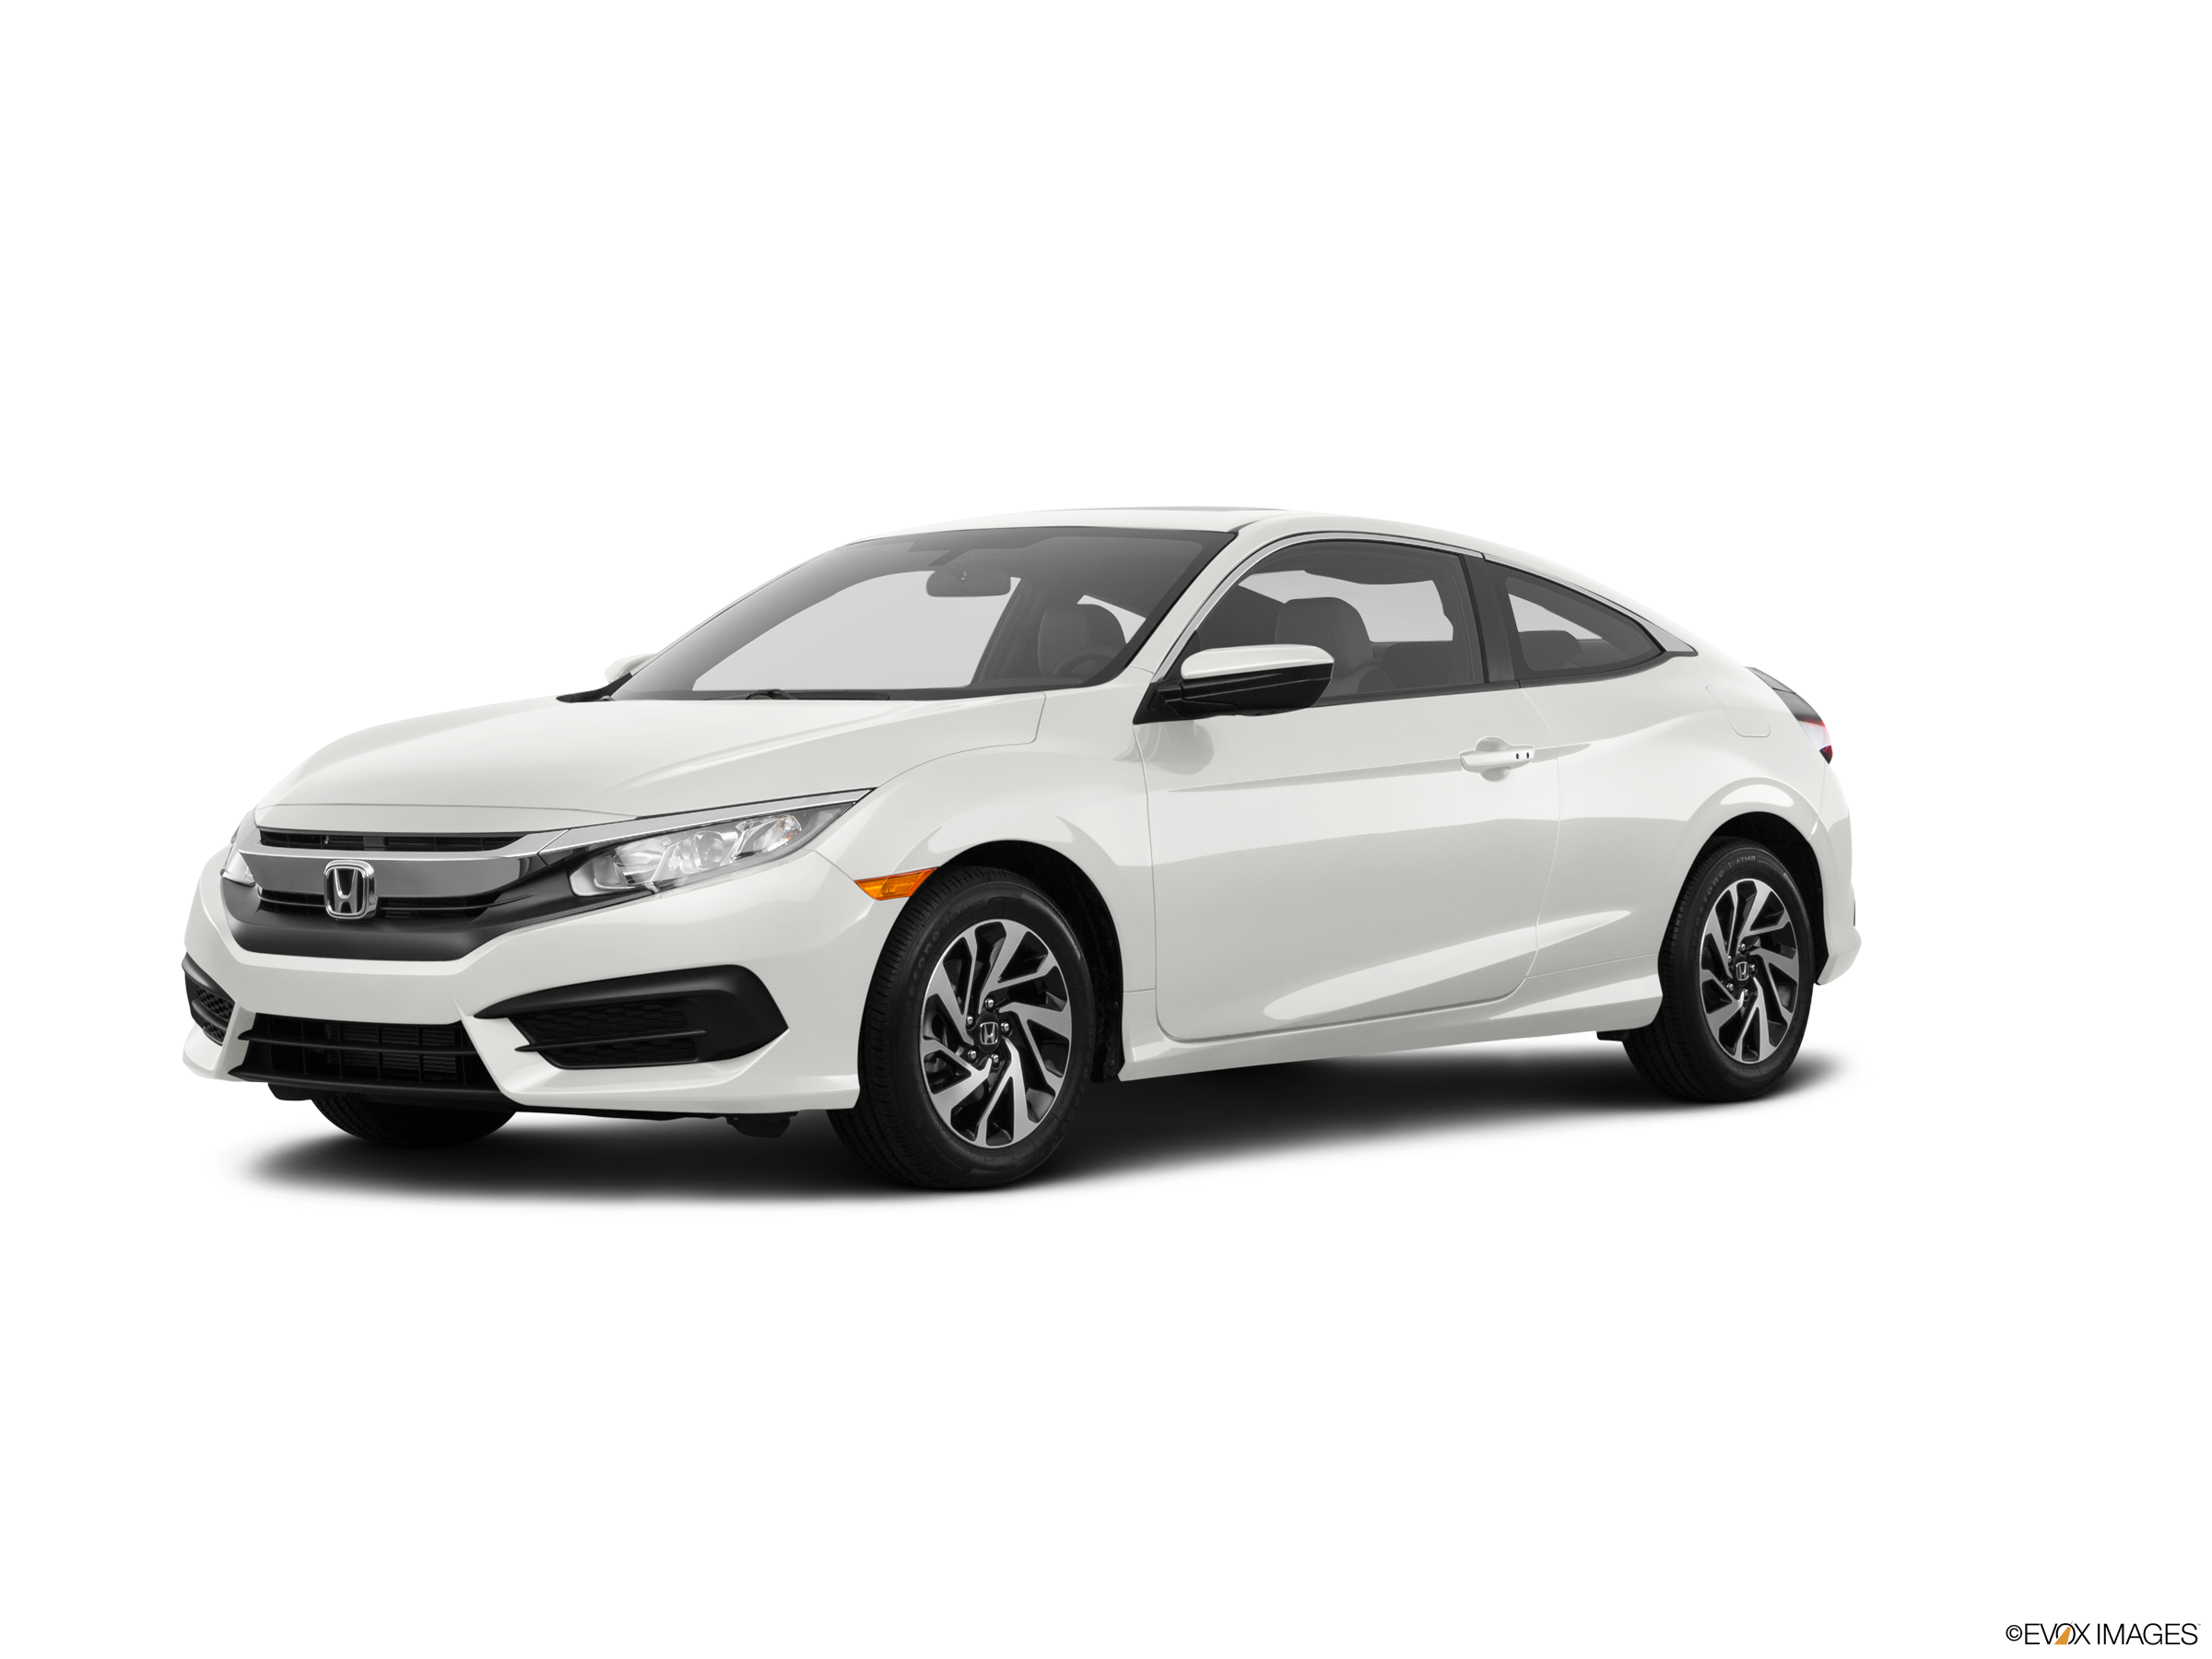 2017 Honda Civic Values Cars For Sale Kelley Blue Book